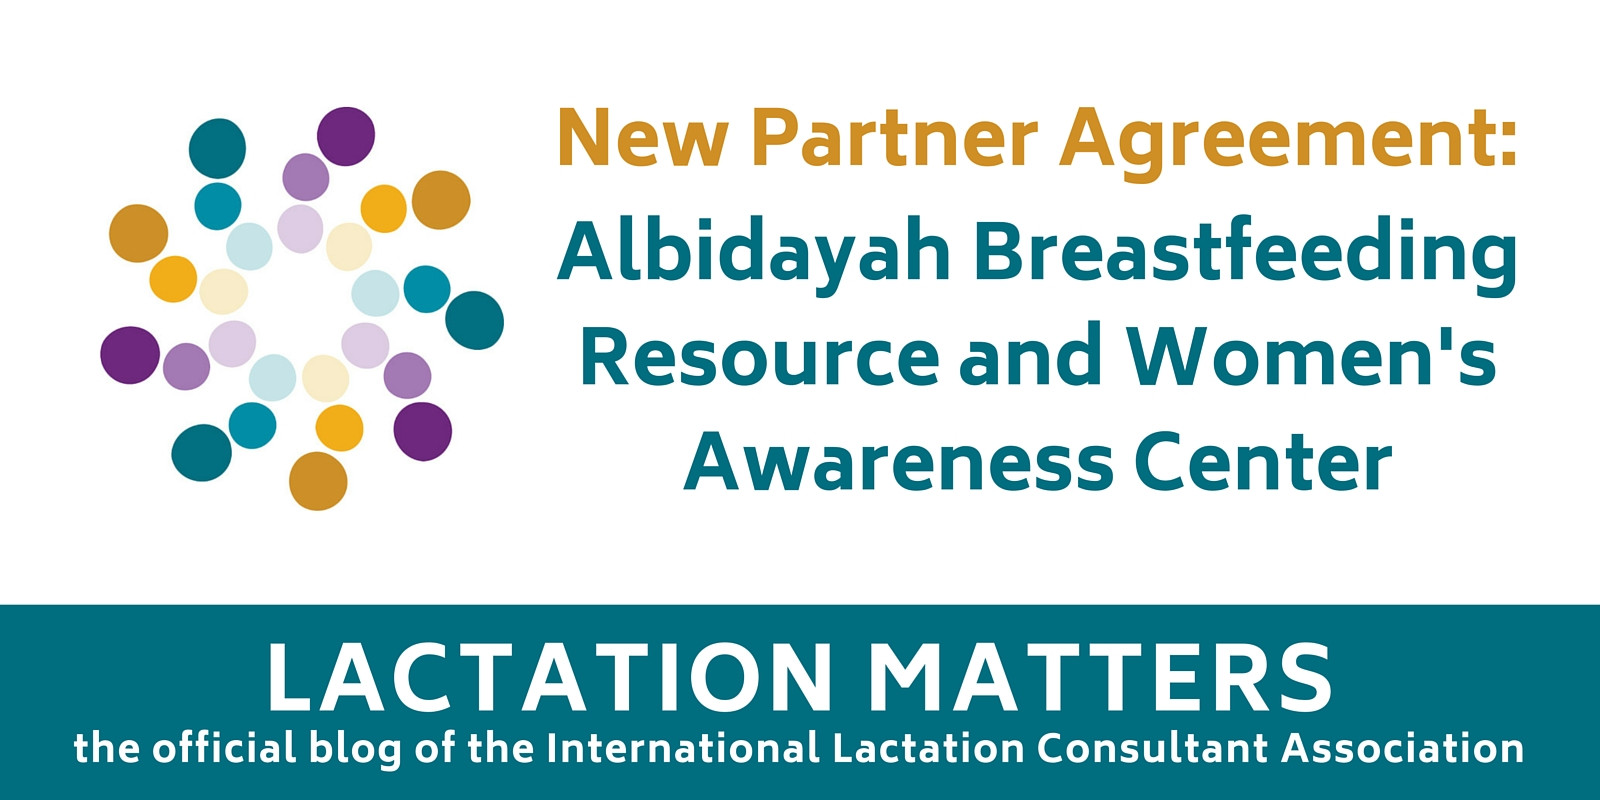 Lactation Matters Post Titles (1)